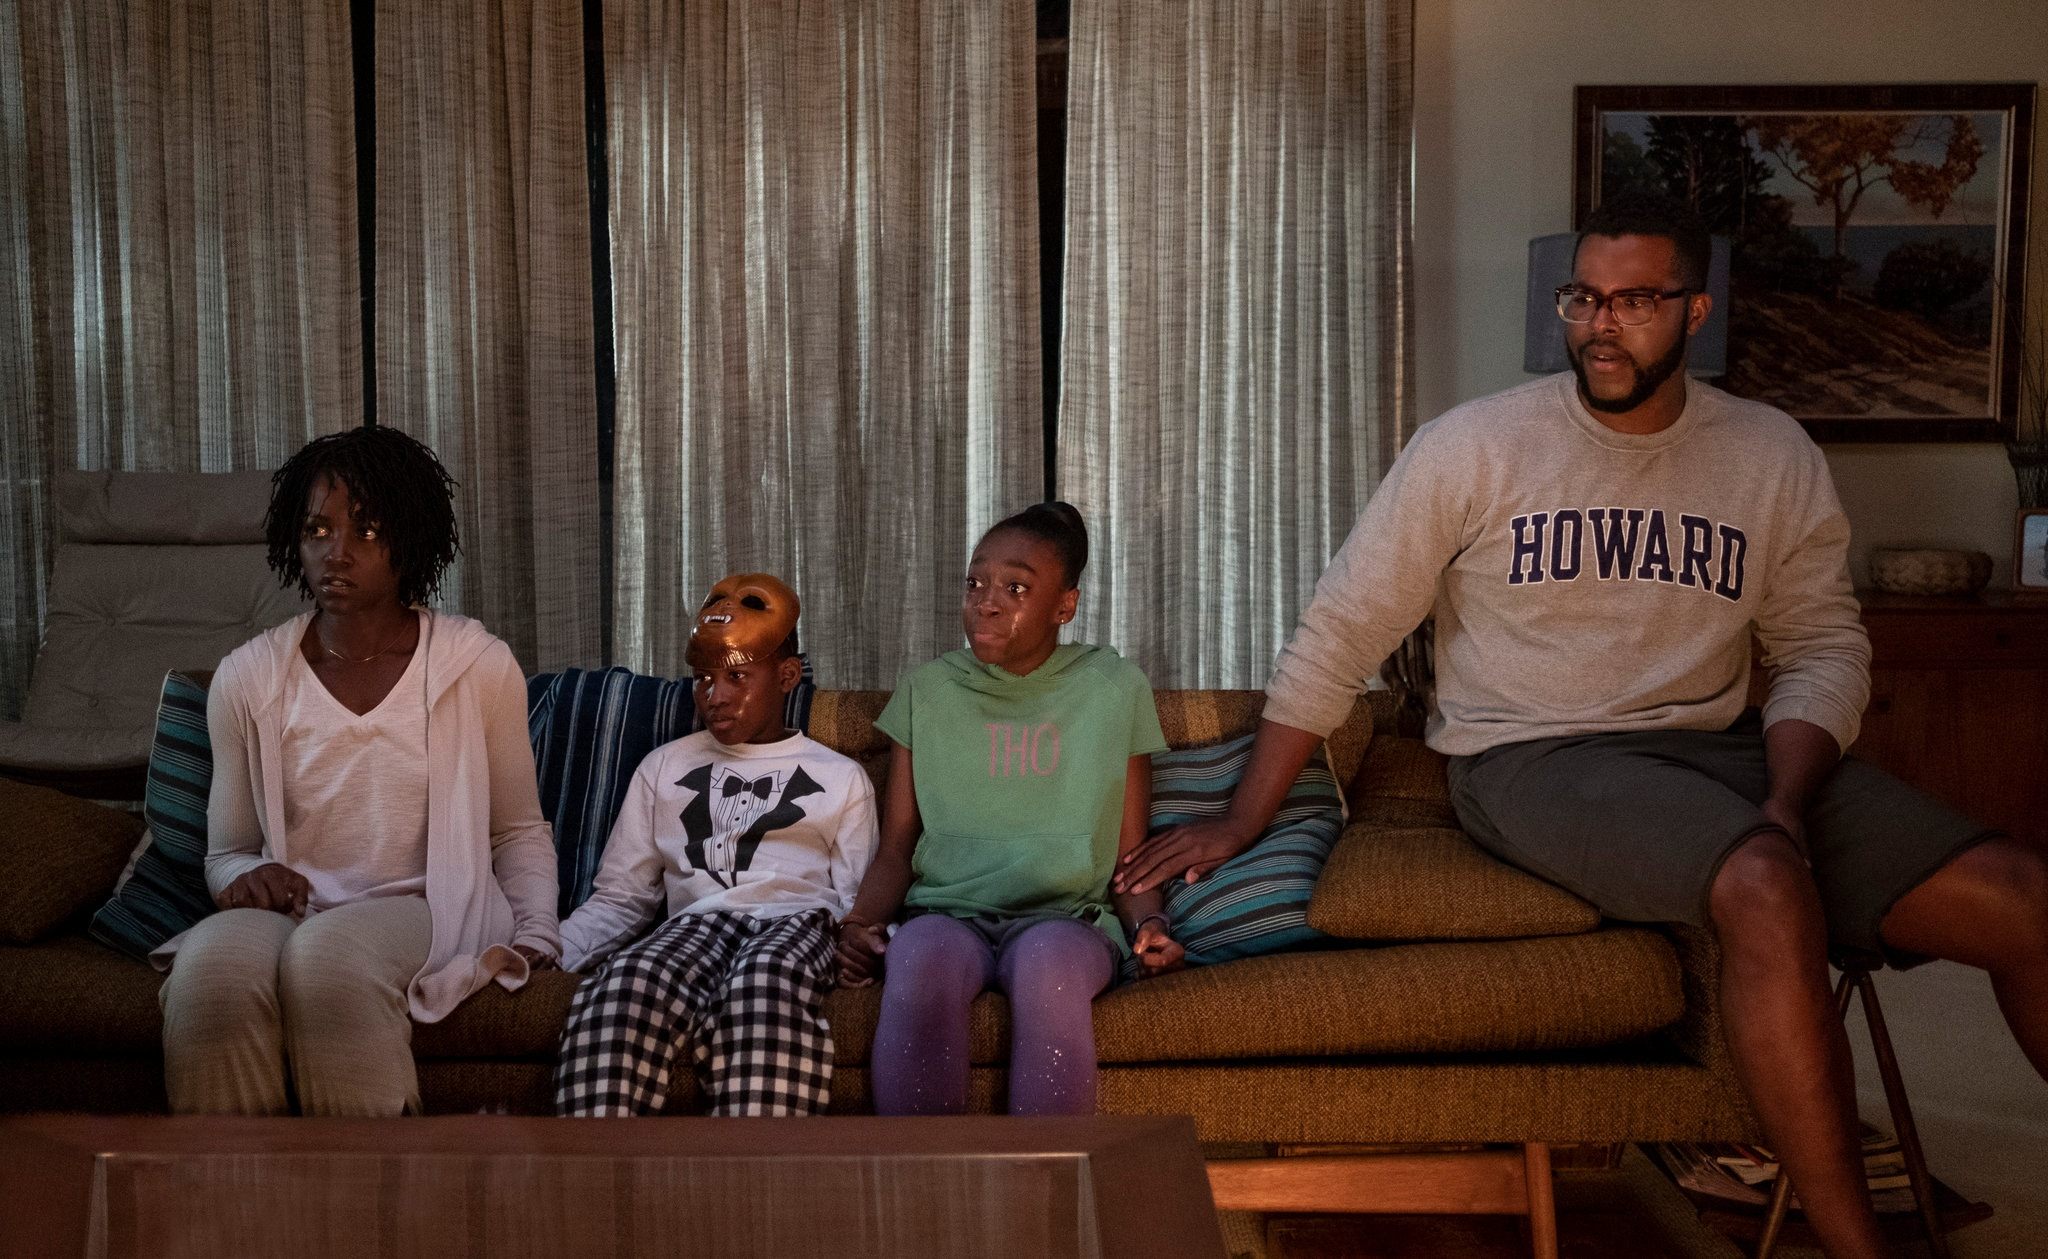 Jordan Peele, Us, Scary Movie, Horror Movie, Black Movie, African American Movie, Black Film, African American Film, Black Cinema, African American Cinema, KOLUMN Magazine, KOLUMN, KINDR'D Magazine, KINDR'D, Willoughby Avenue, Wriit,